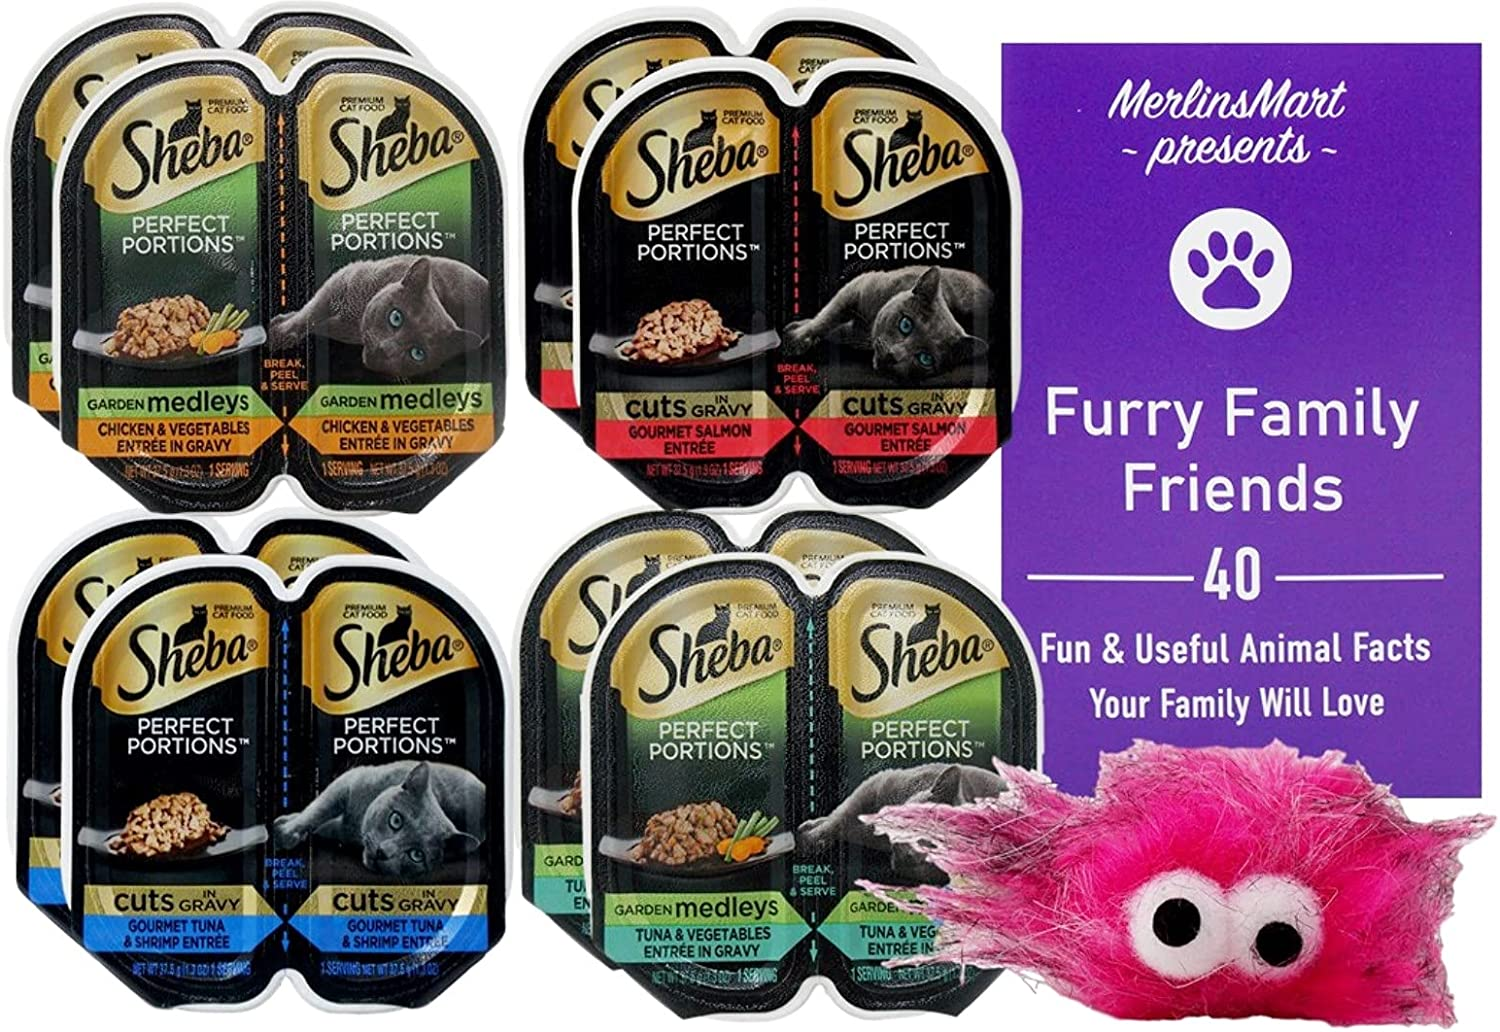 Sheba Perfect Portions Garden Medley Cuts in Gravy Cat Food 4 Flavor 8 Can Variety Sampler, (2) Each: Chicken, Salmon, Tuna Shrimp, Tuna (2.6 Ounces) - Plus Catnip Toy and Fun Facts Booklet Bundle